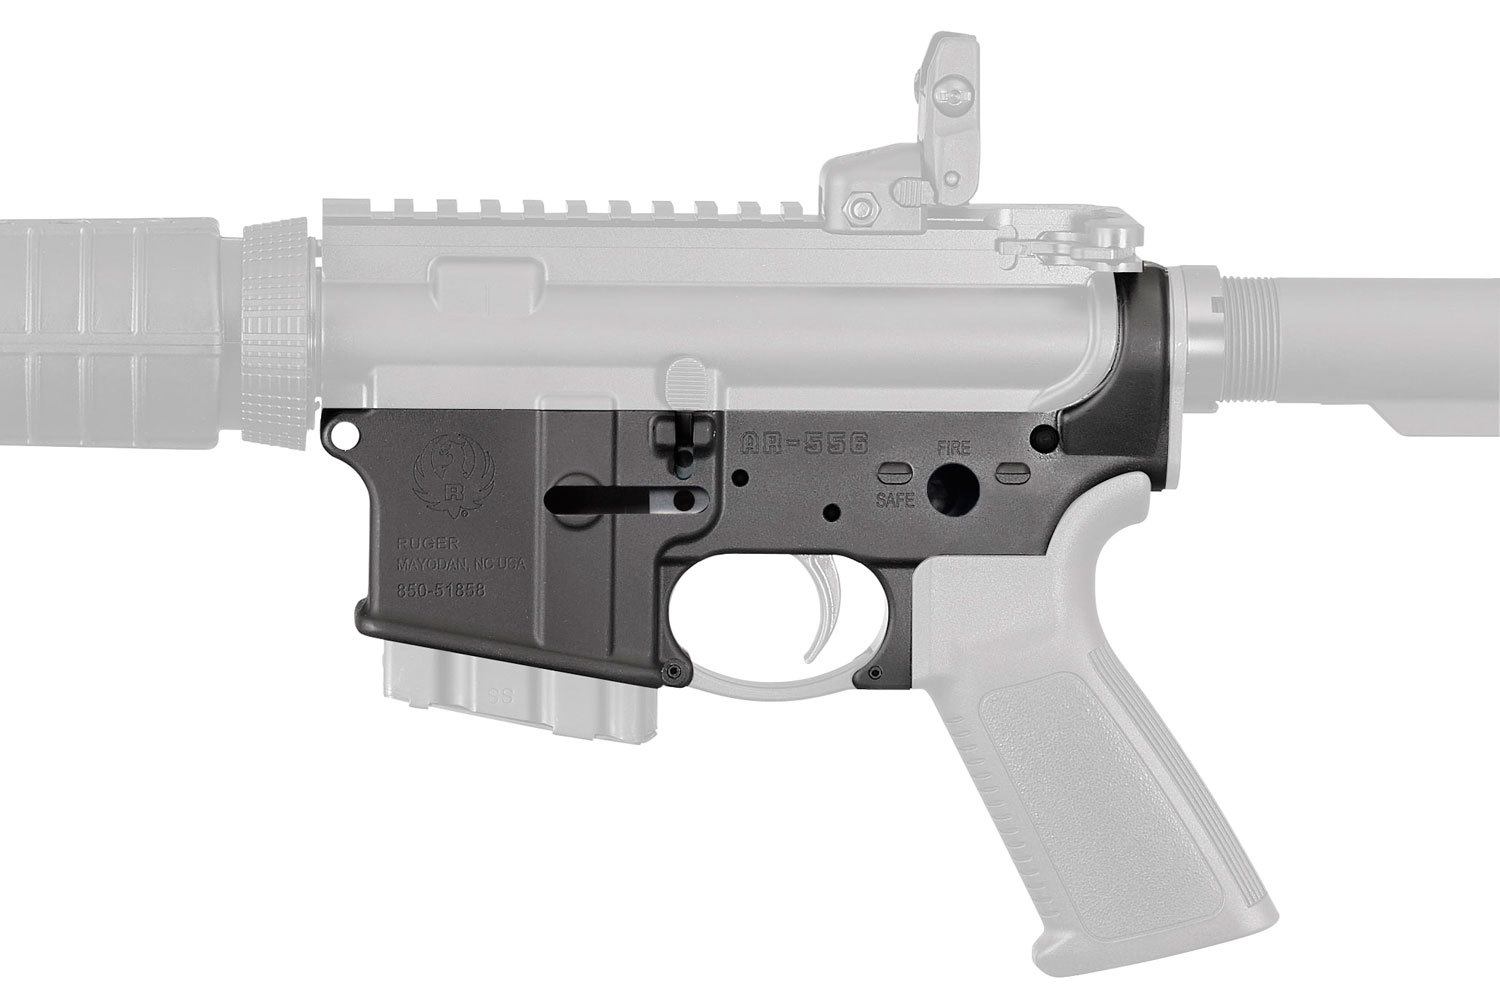 RUG AR-556 LOWER RECEIVER ONLY